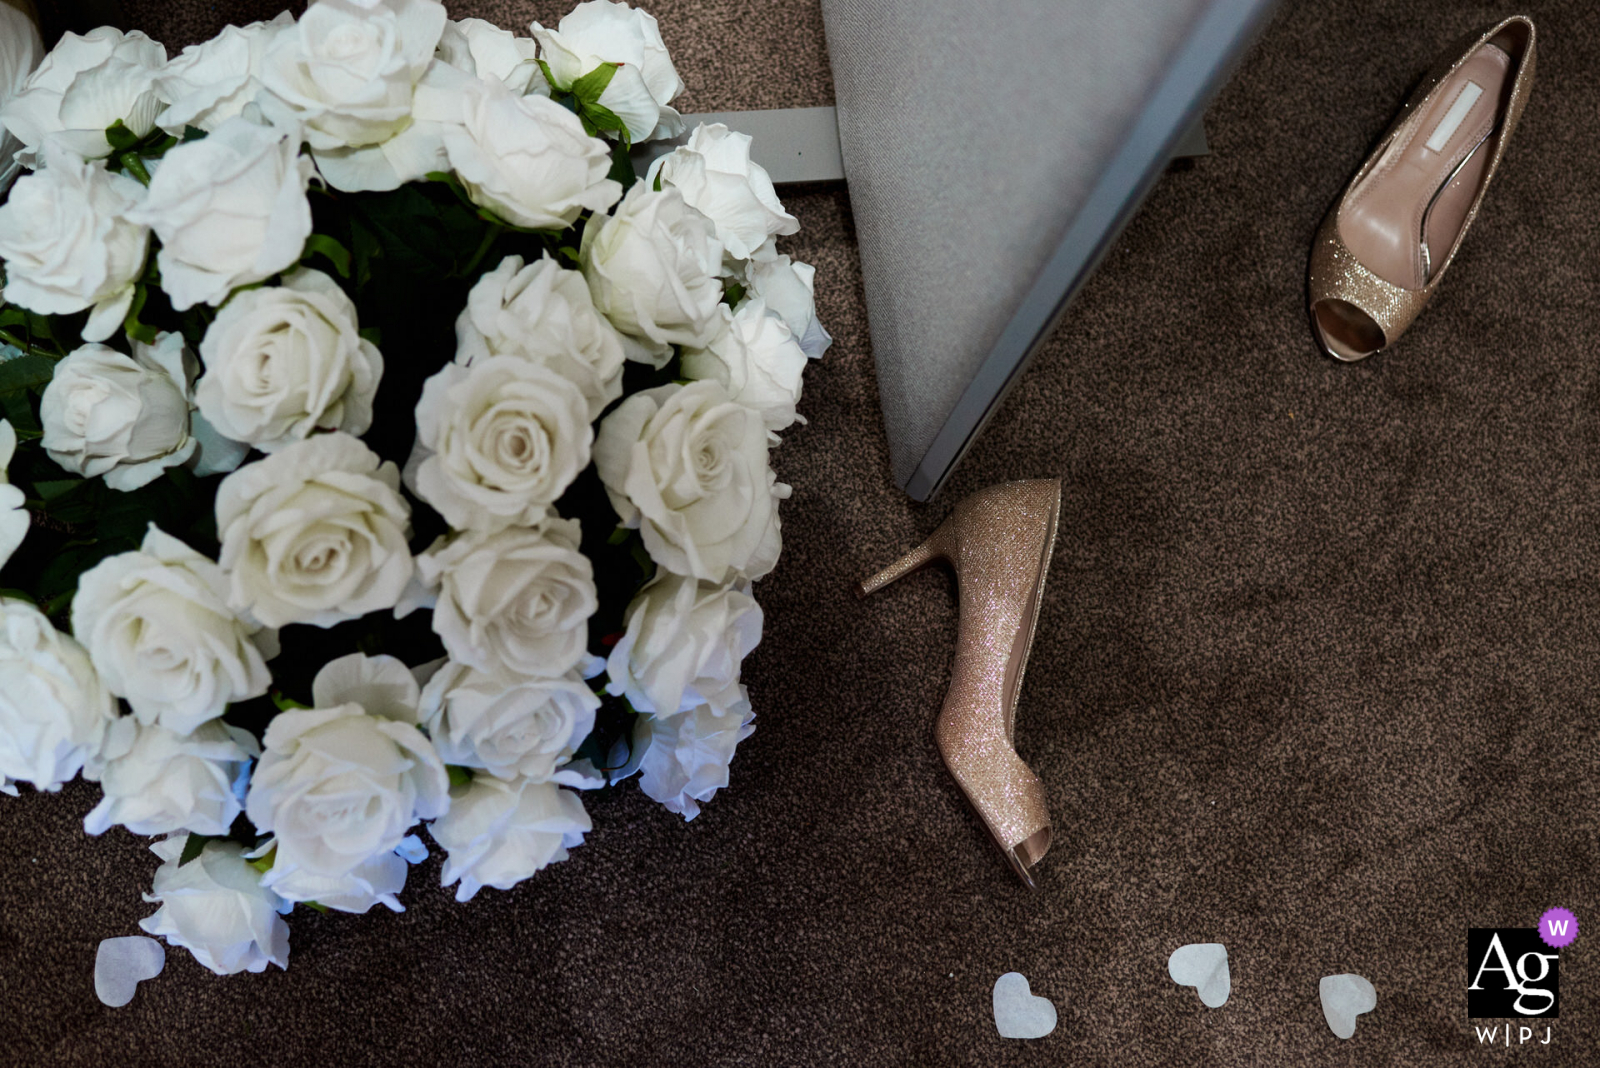 Creative detail wedding photo from a Private venue, Birmingham, UKof Wedding shoes on the floor